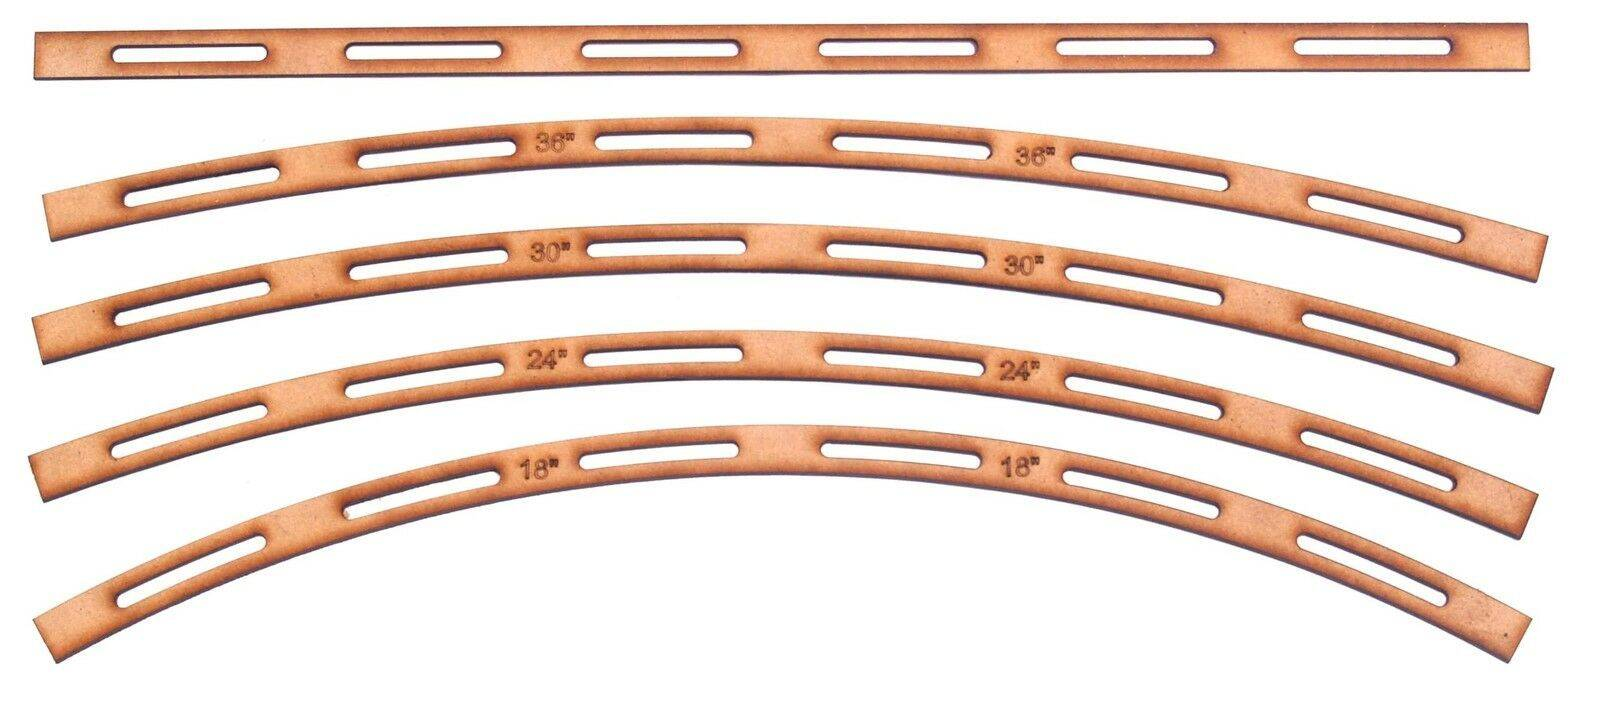 N Scale Model Railroad Track Templates